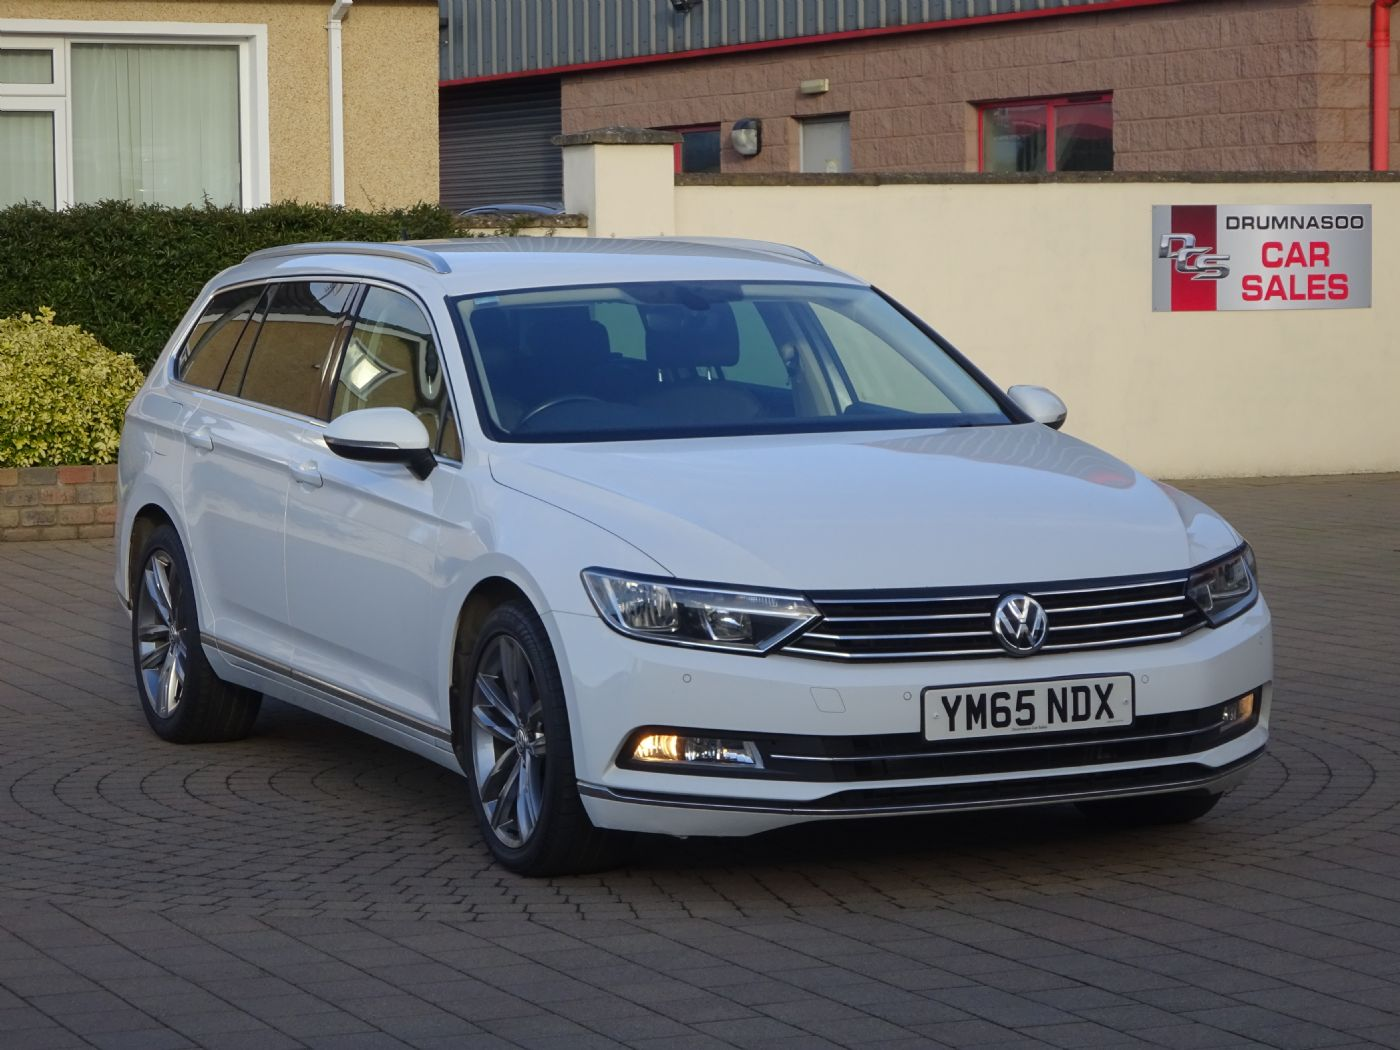 Volkswagen Passat GT TDI BluemotionTech, Sat Nav, £20 Road tax